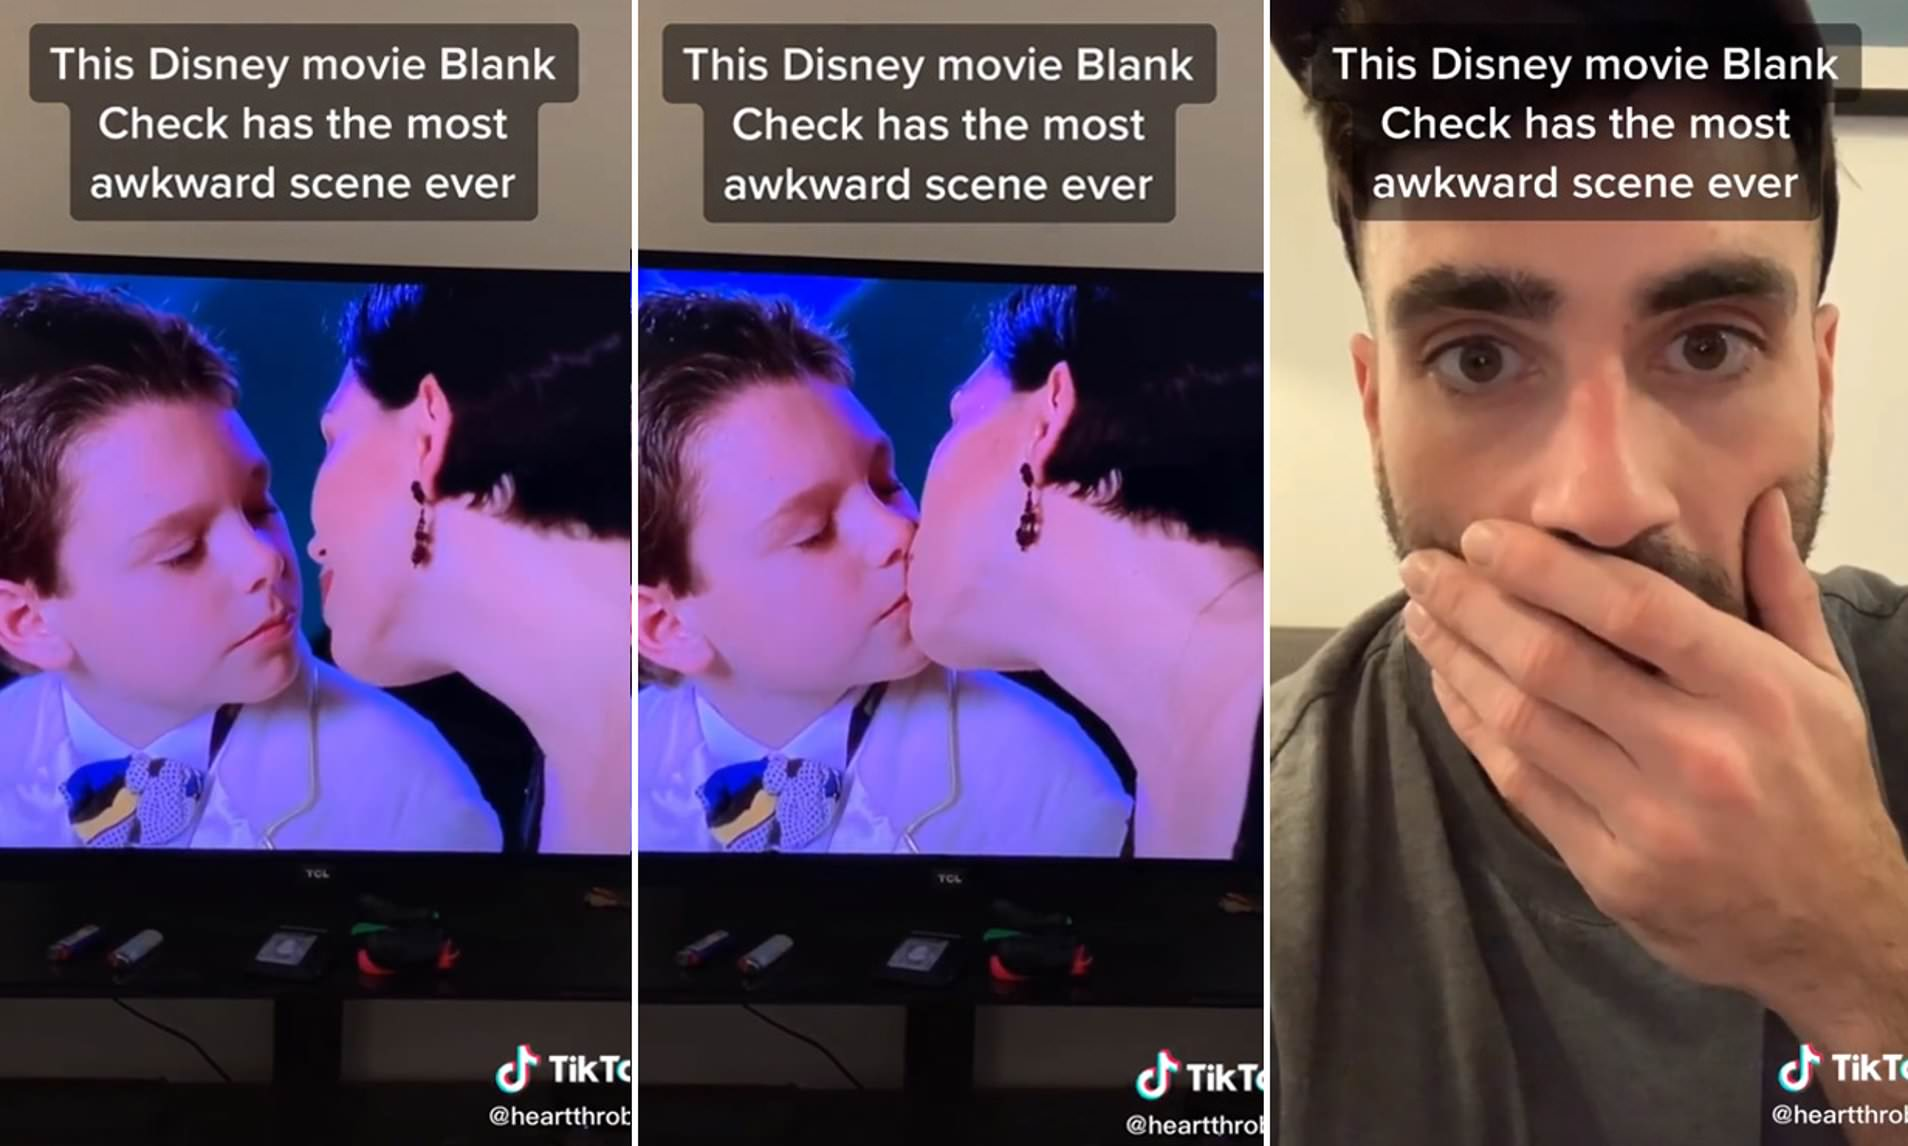 Disney Users Are Left Outraged By Kissing Scene In Blank Check